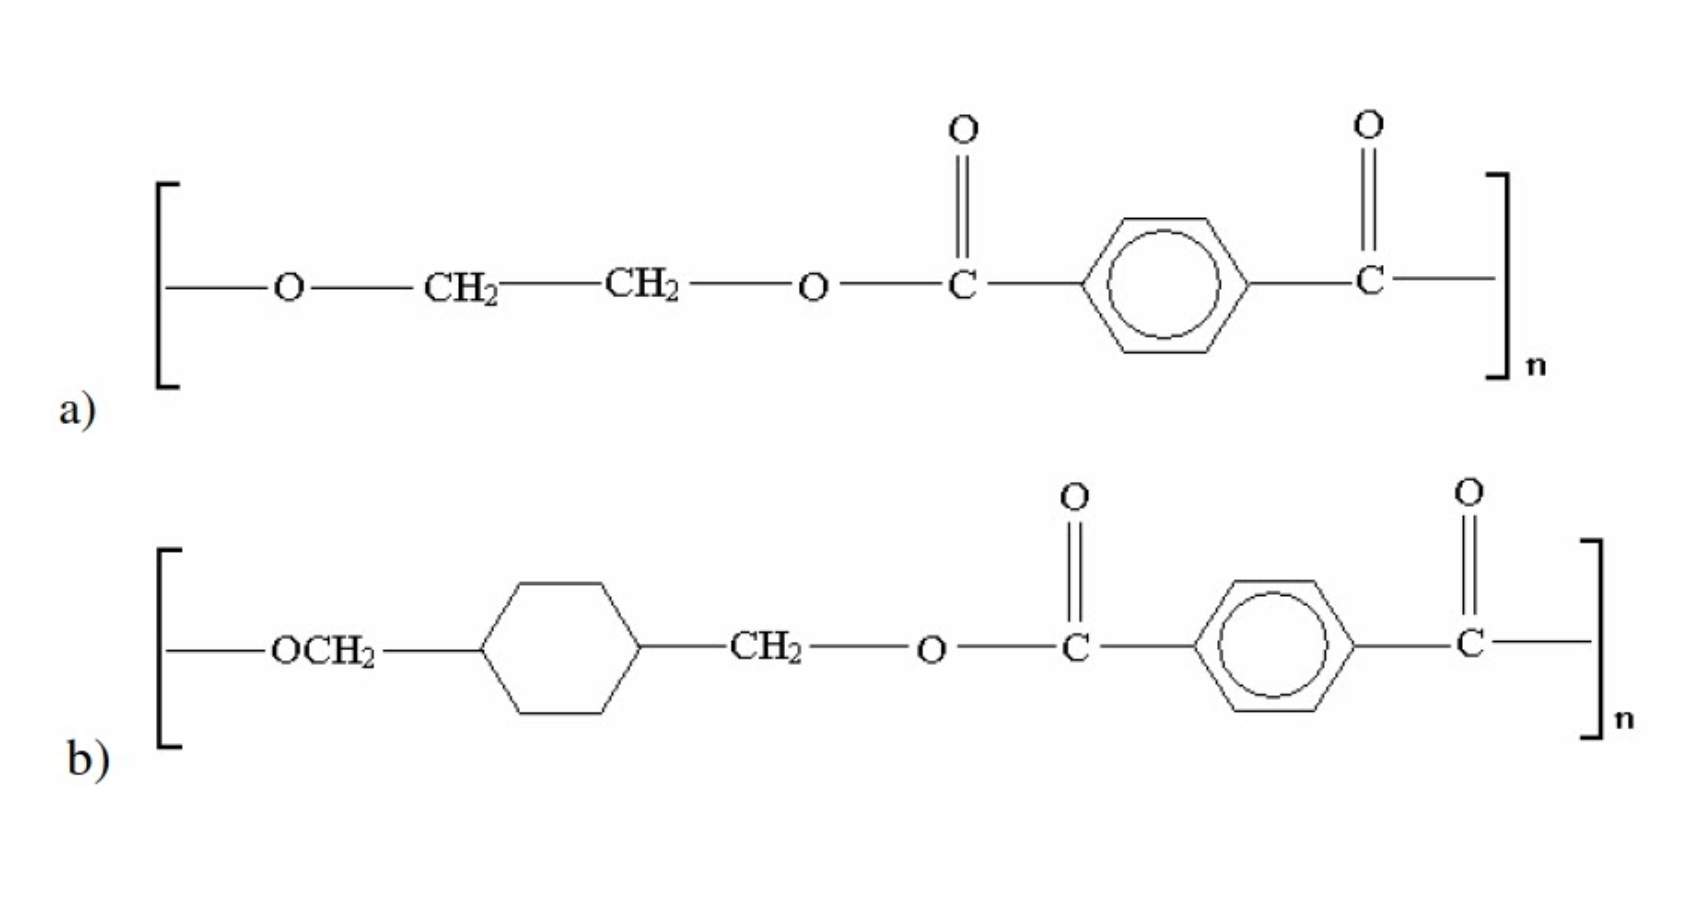 Figure 2. The structures of (a) PET and (b) PETG [3].